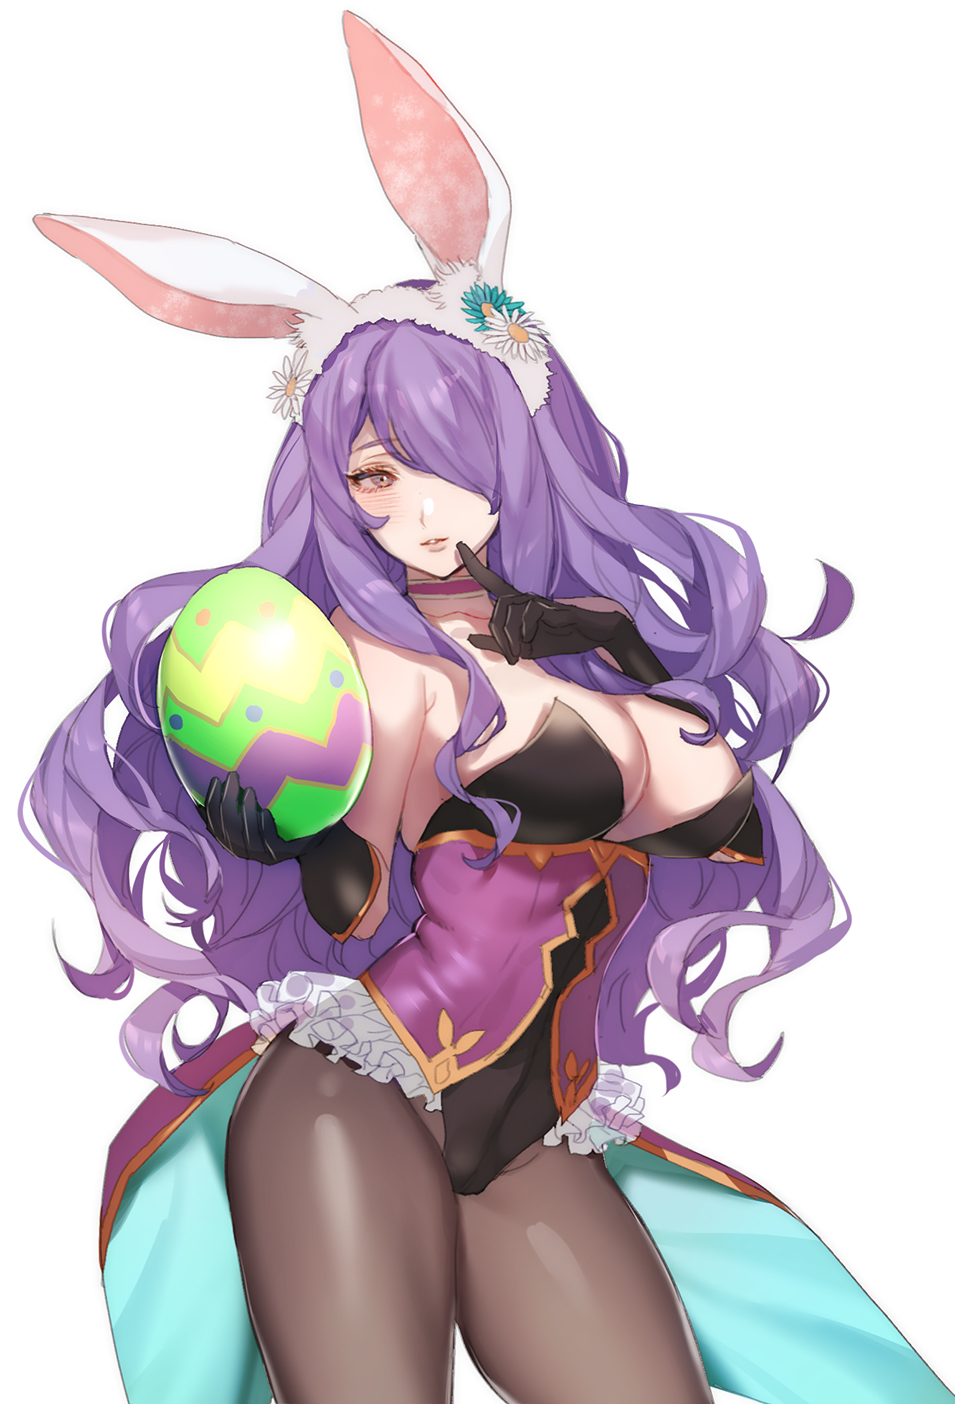 1girl animal_ears bare_shoulders breasts bunny_girl bunnysuit camilla_(fire_emblem_if) cleavage detached_collar egg fake_animal_ears fire_emblem fire_emblem_heroes fire_emblem_if gloves hair_over_one_eye highres large_breasts lips long_hair looking_at_viewer pantyhose purple_hair rabbit_ears solo tiara very_long_hair violet_eyes wavy_hair wrist_cuffs zuizi